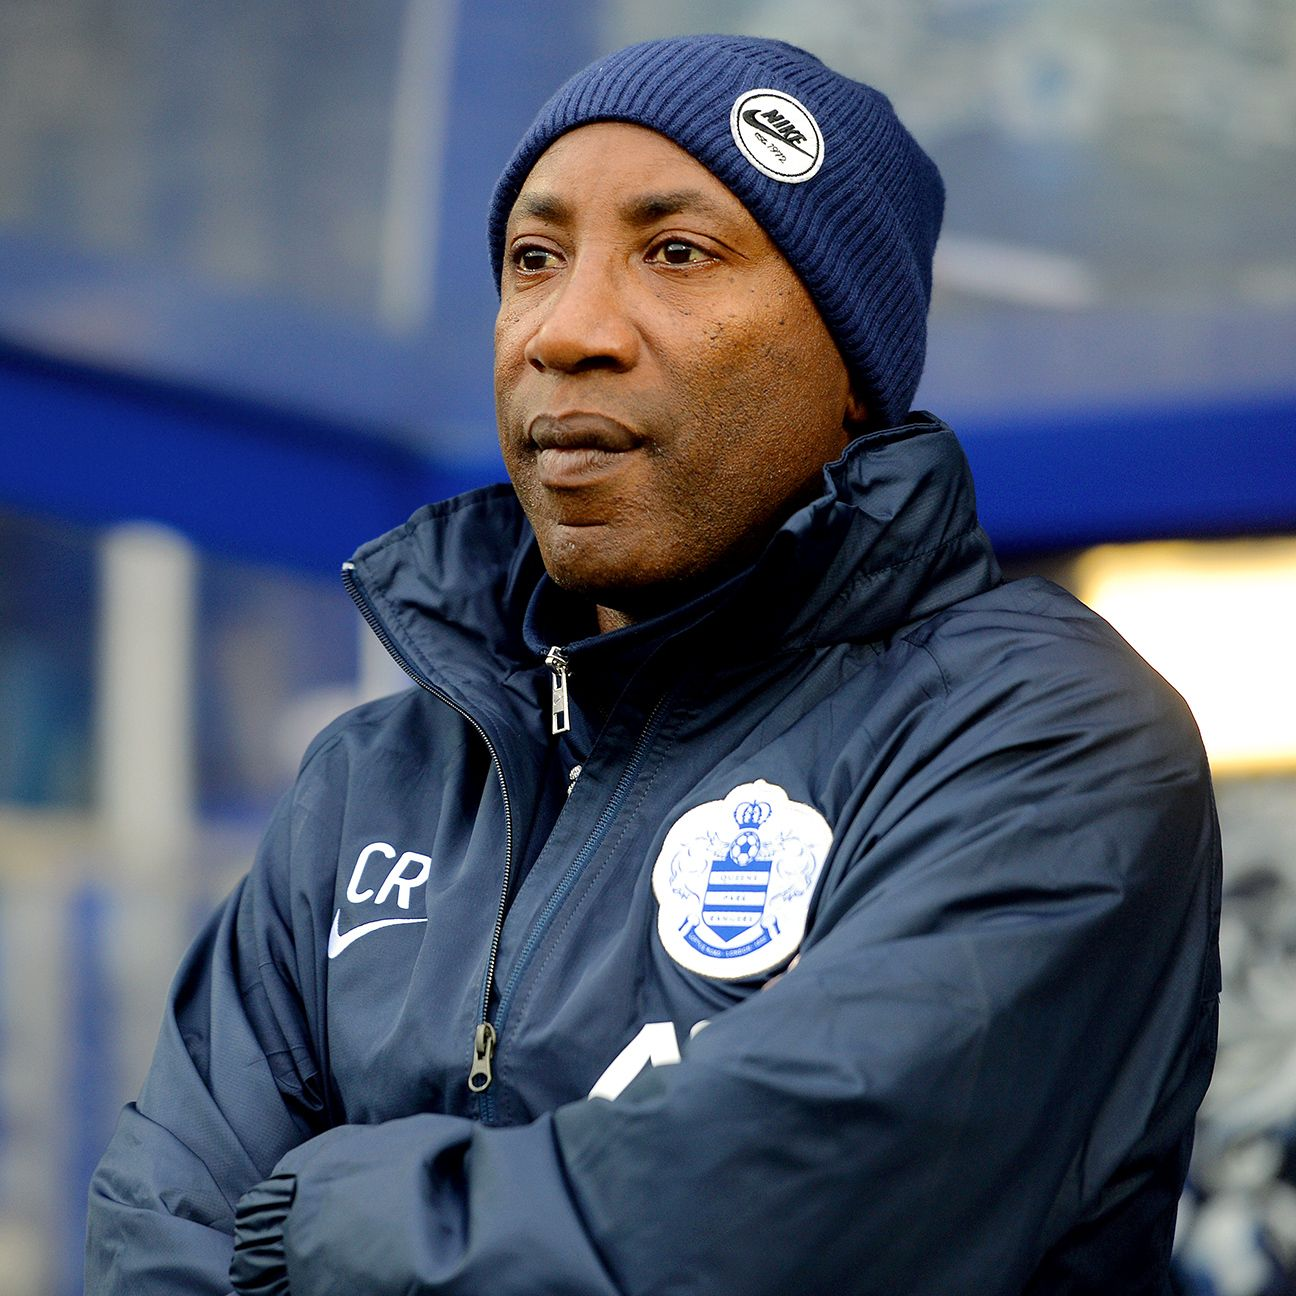 Some of QPR's fringe players could see some playing time under caretaker manager Chris Ramsey against Sunderland.